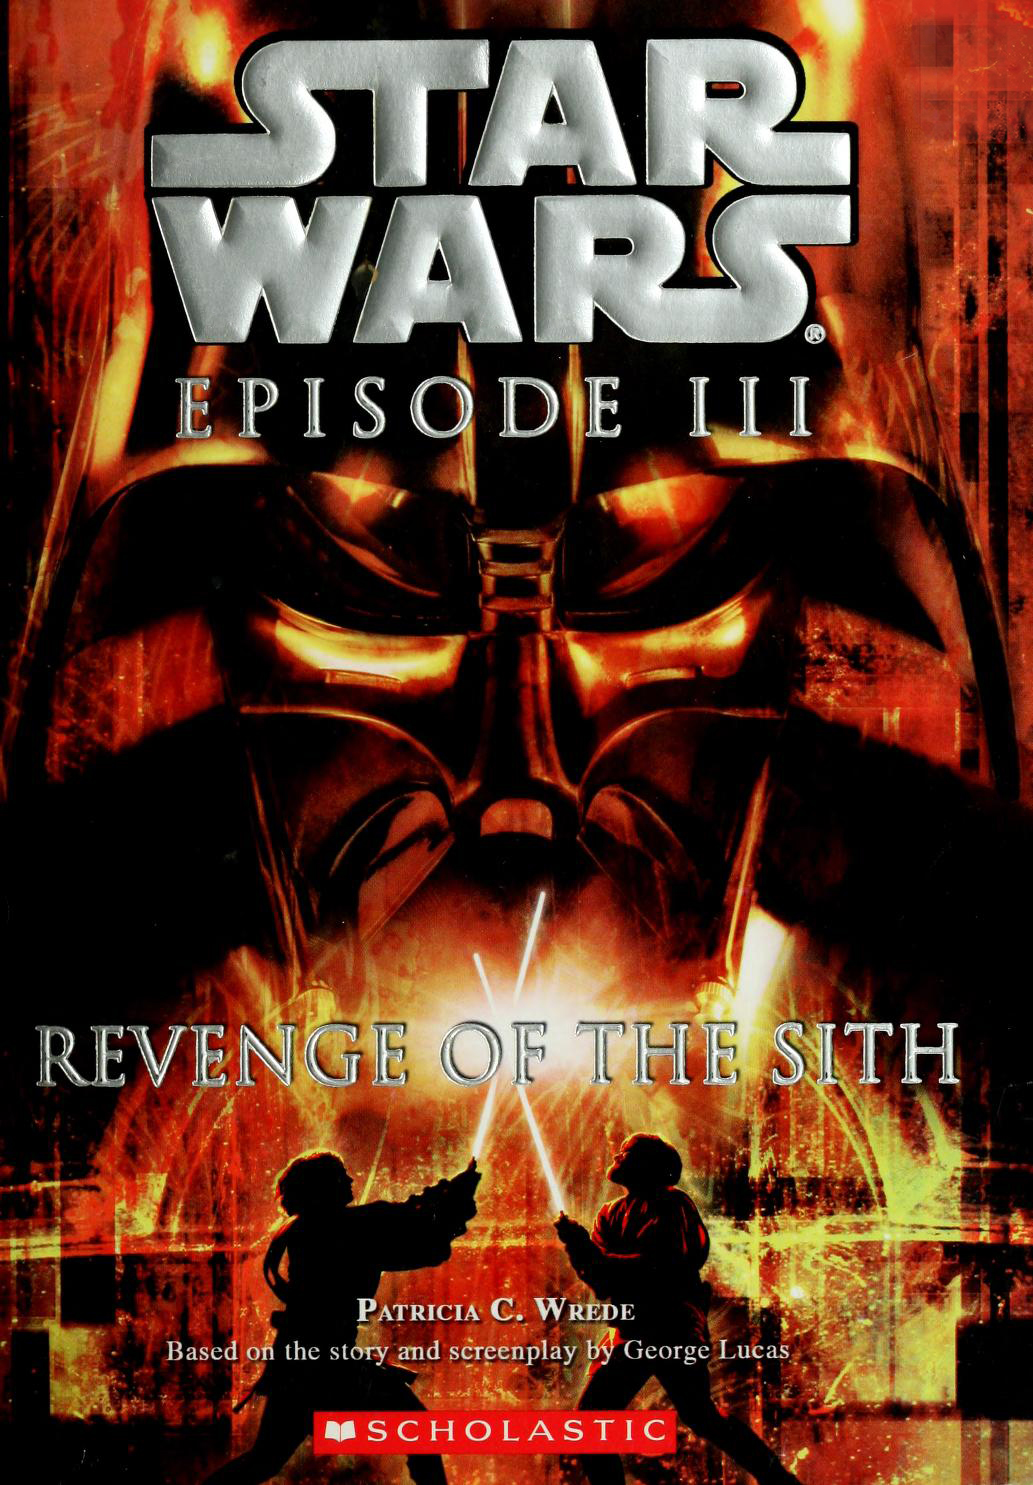 Lego Disney Star Wars Episode Iii Revenge Of The Sith Memorabilia Poster Current Releases Entertainment Memorabilia Current Releases